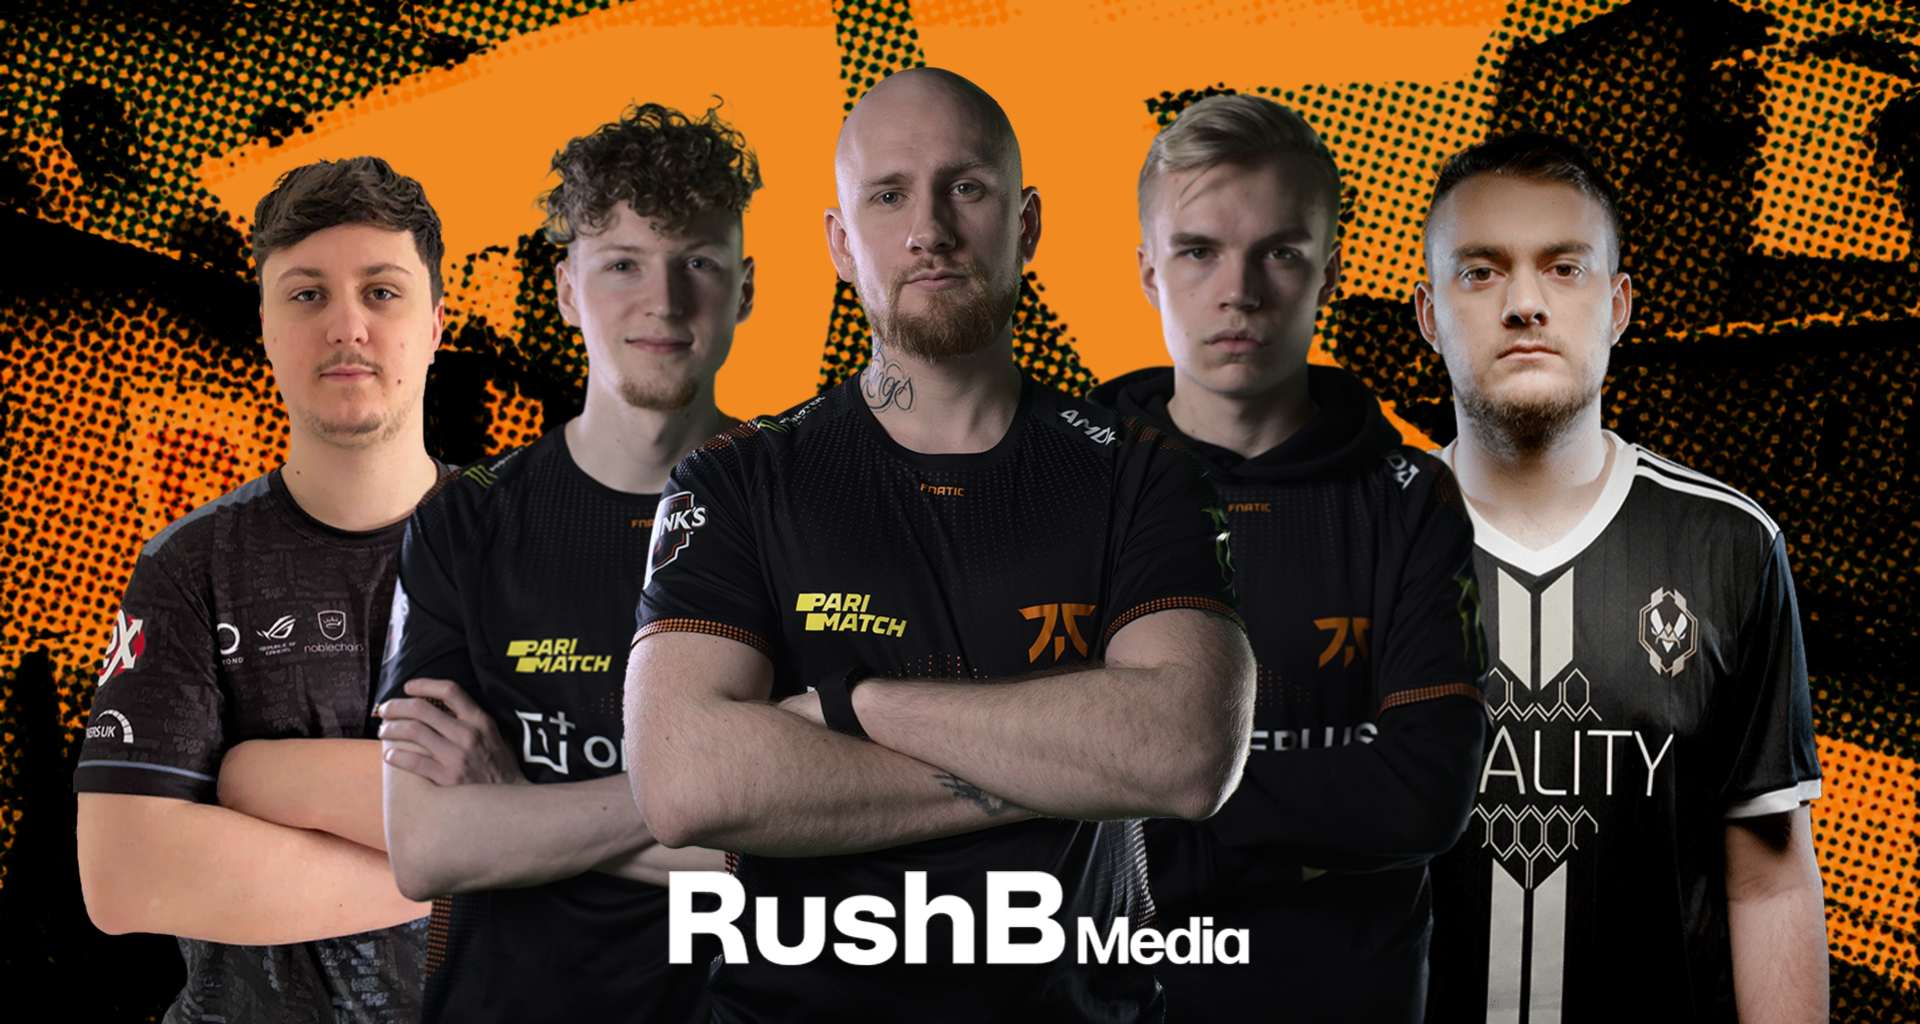 The FNATIC roster, consisting of Brollan, Mezii, Alex, Krimz, and Jackinho